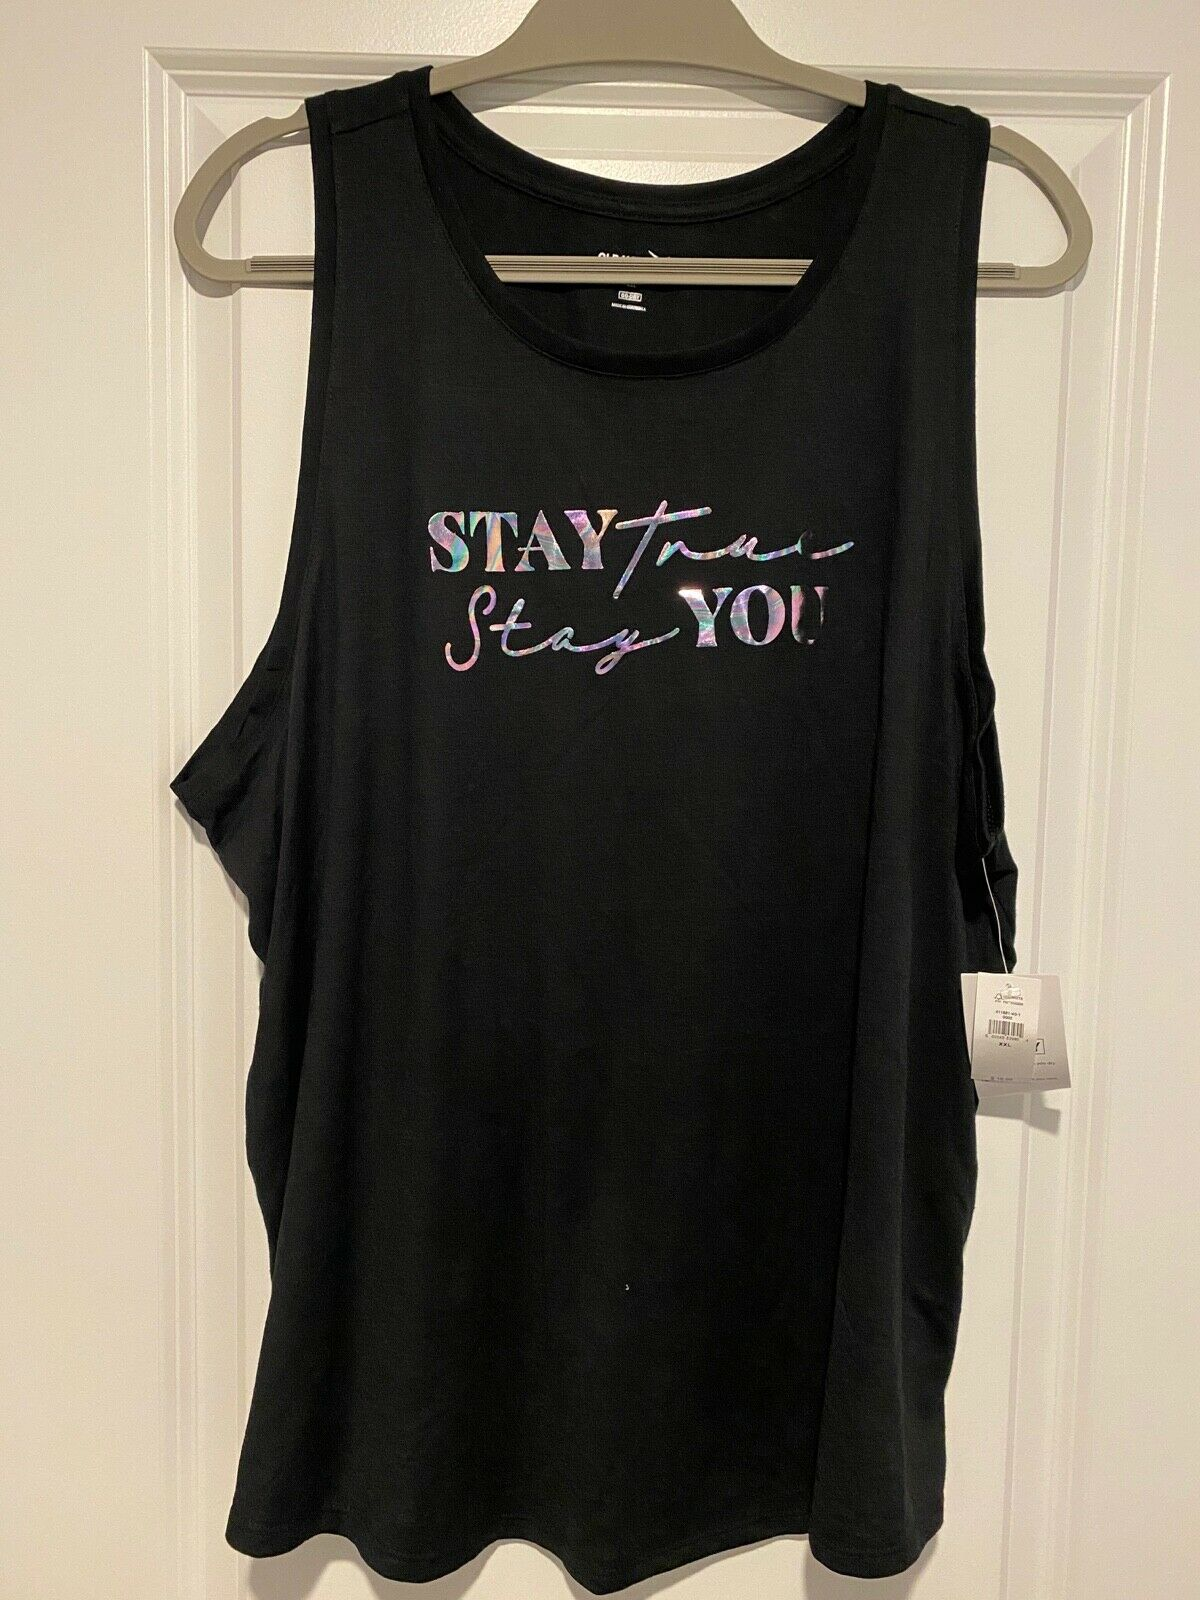 Old Navy Graphic Muscle Tank Top Stay True Stay You Womens Black Size XXL